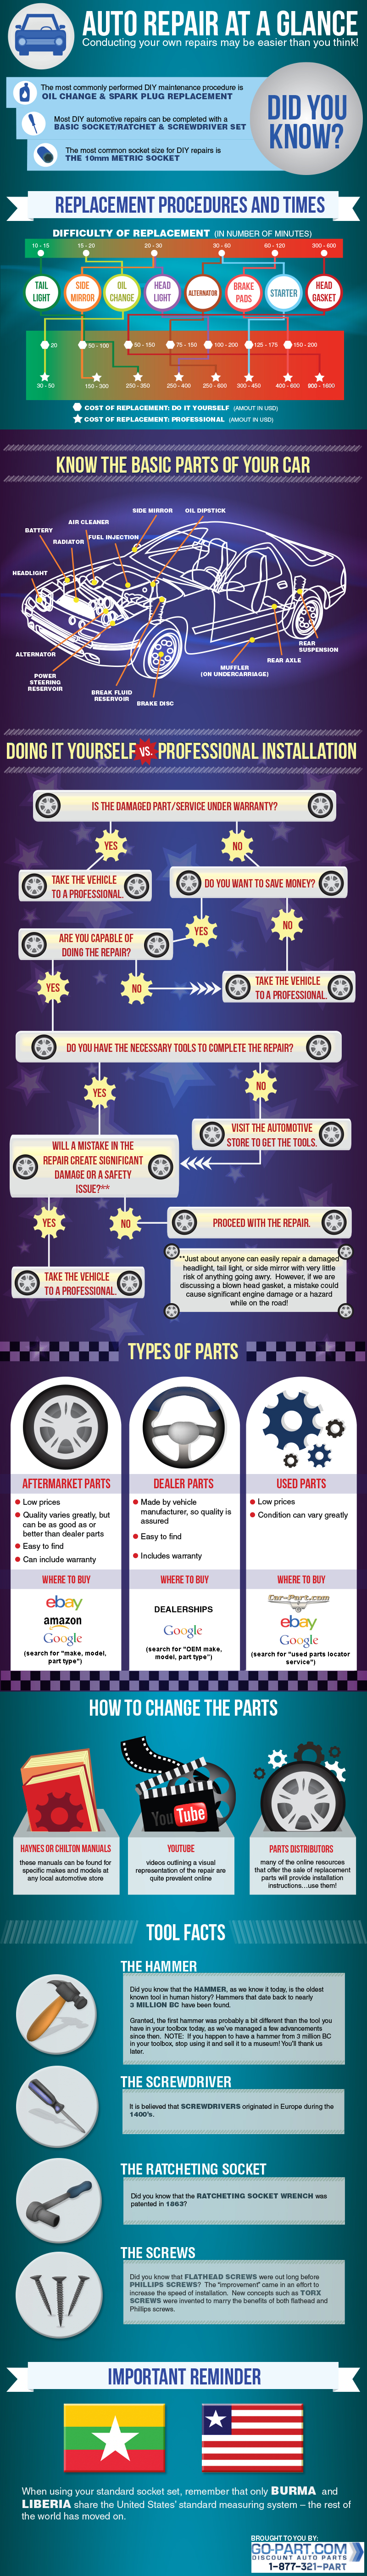 Auto Repair At a Glance